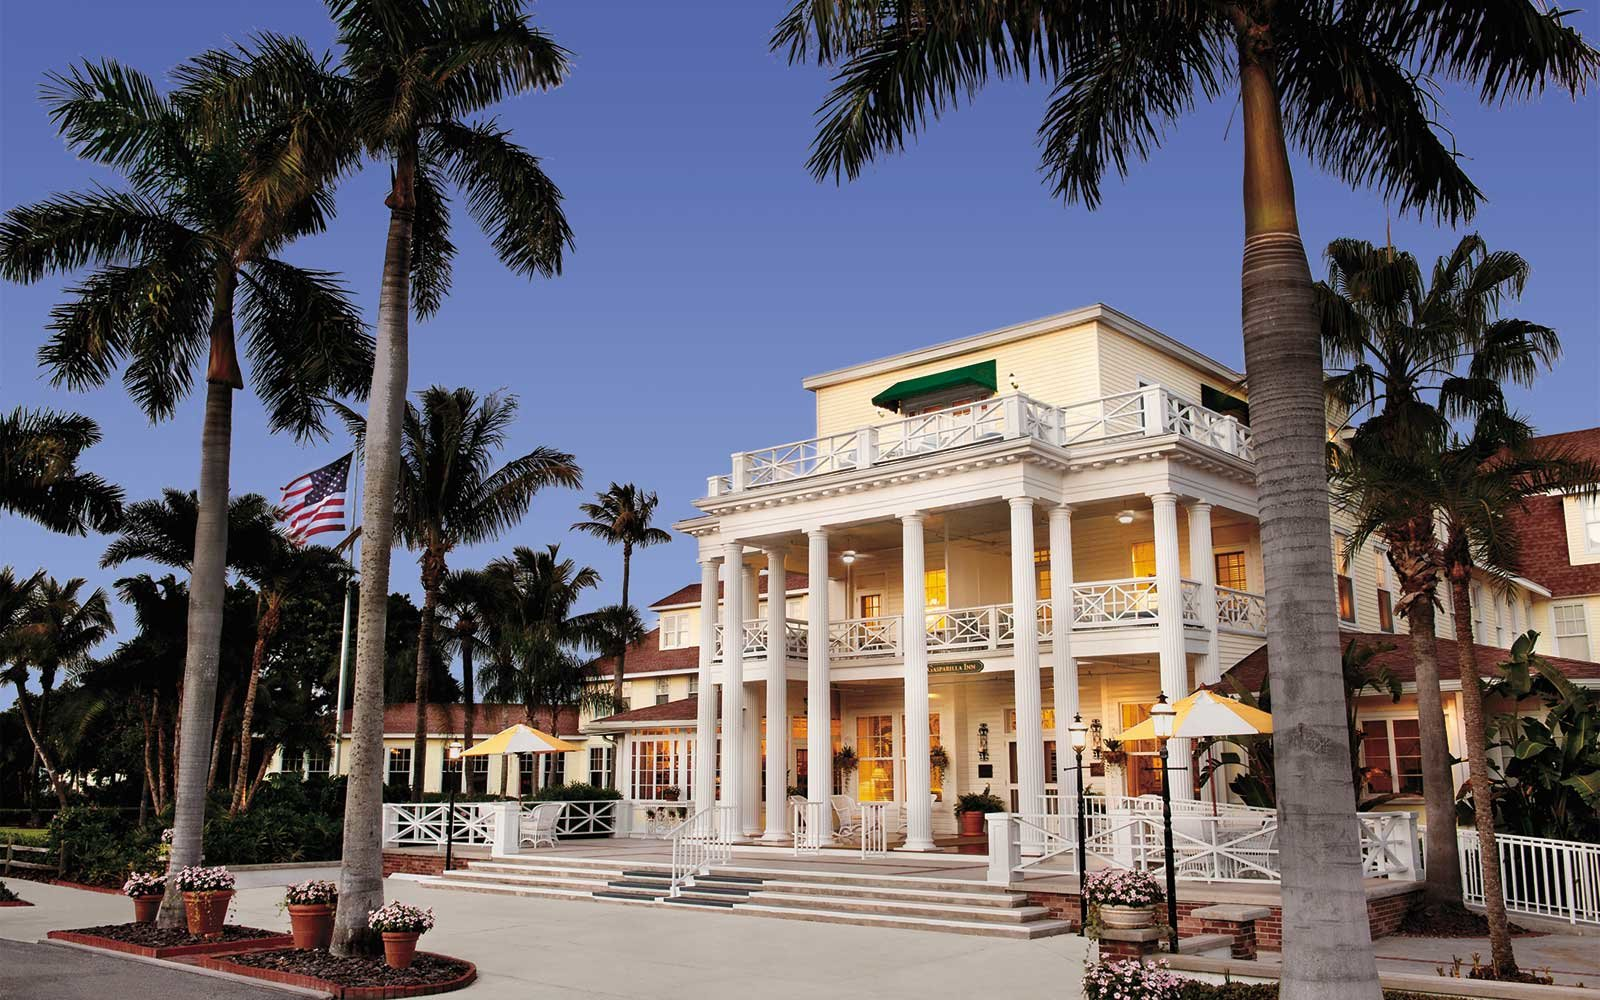 Gasparilla Inn & Club Hotel in Florida